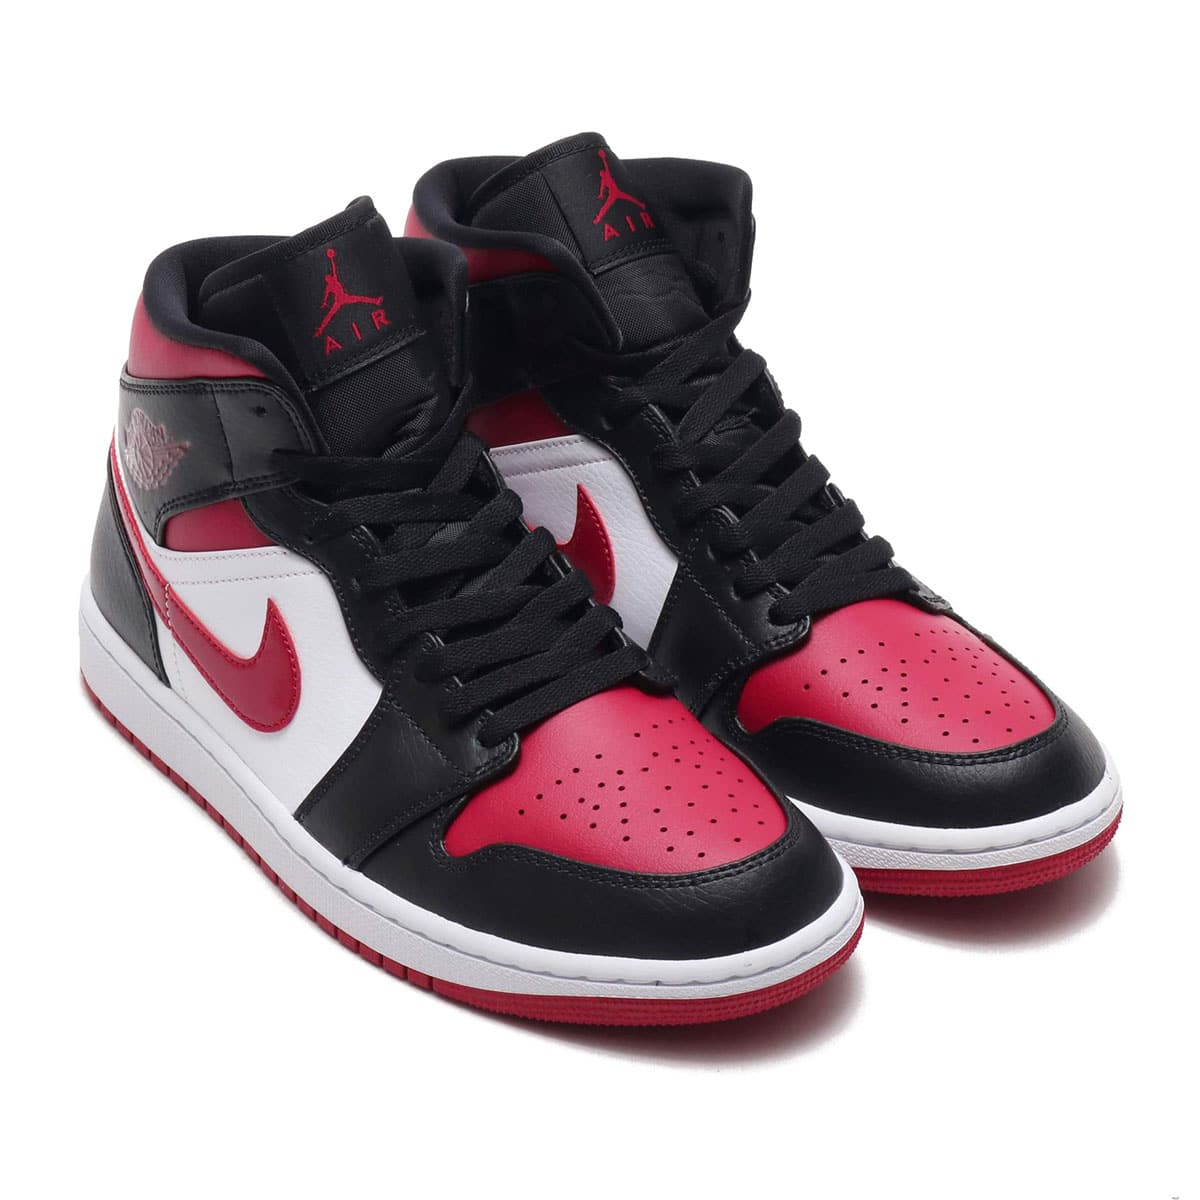 JORDAN BRAND AIR JORDAN 1 MID BLACK/NOBLE RED-WHITE 20SP-S_photo_large